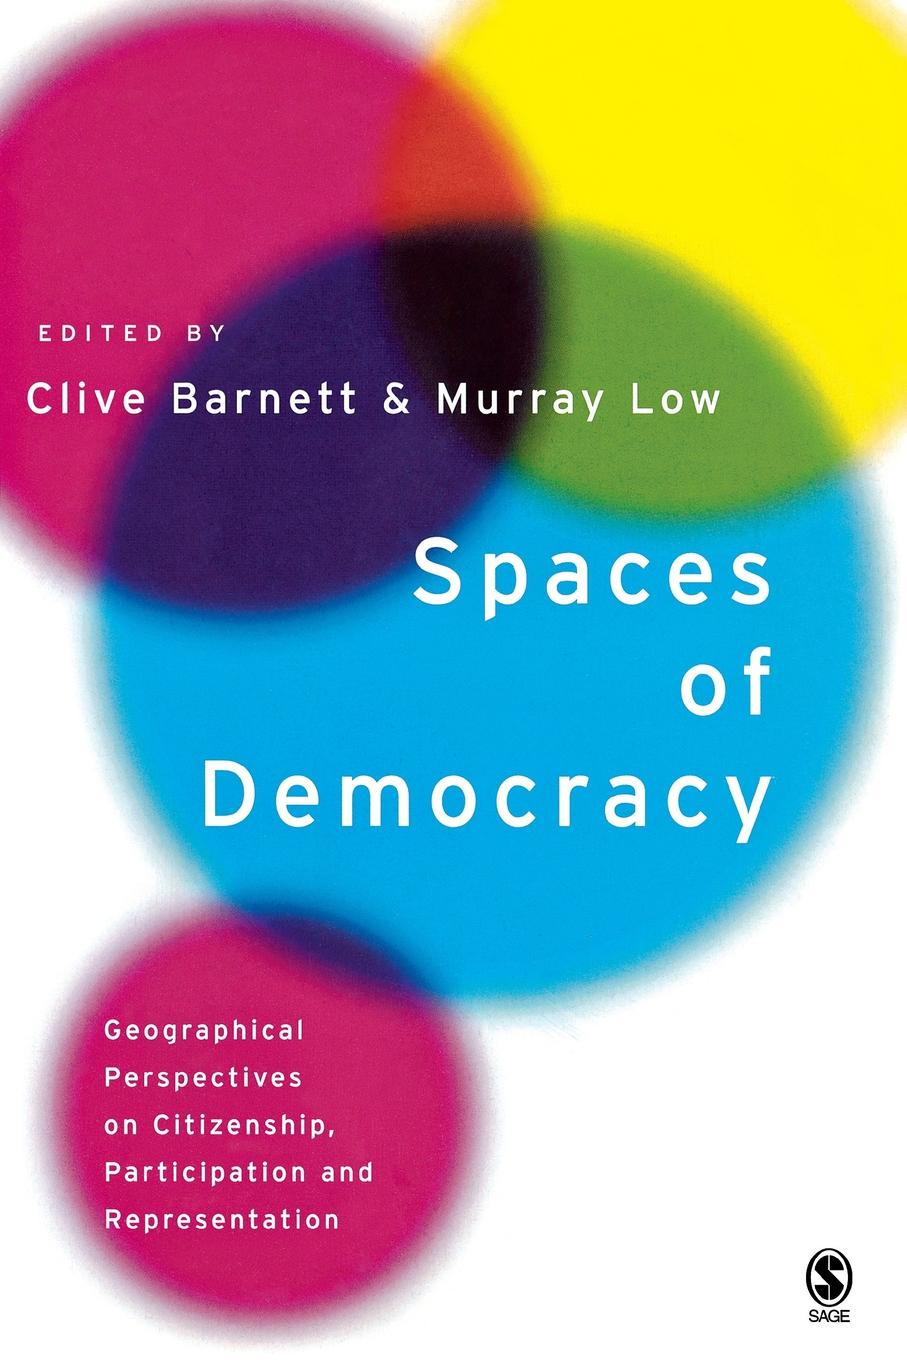 купить Spaces of Democracy. Geographical Perspectives on Citizenship, Participation and Representation онлайн